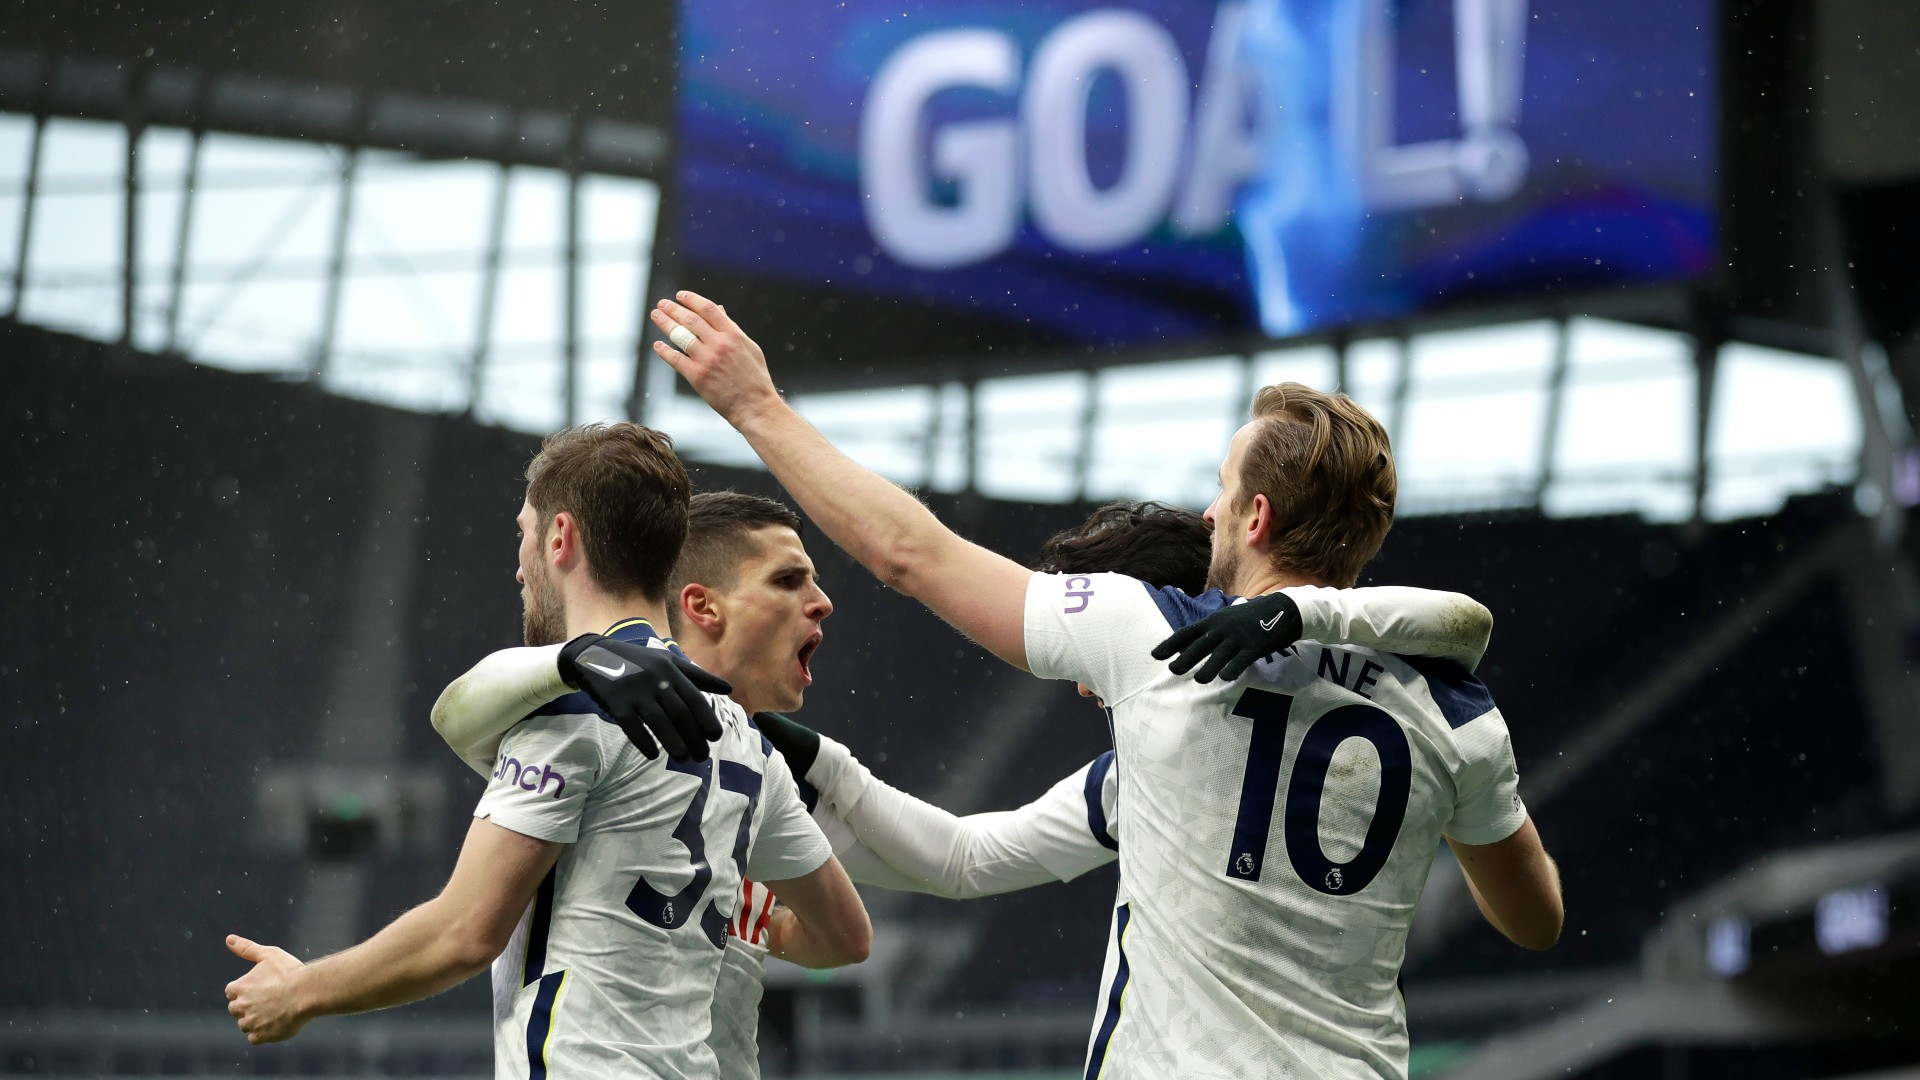 Kane moves up to joint second on all-time Tottenham scoring list after surprise injury return against West Brom